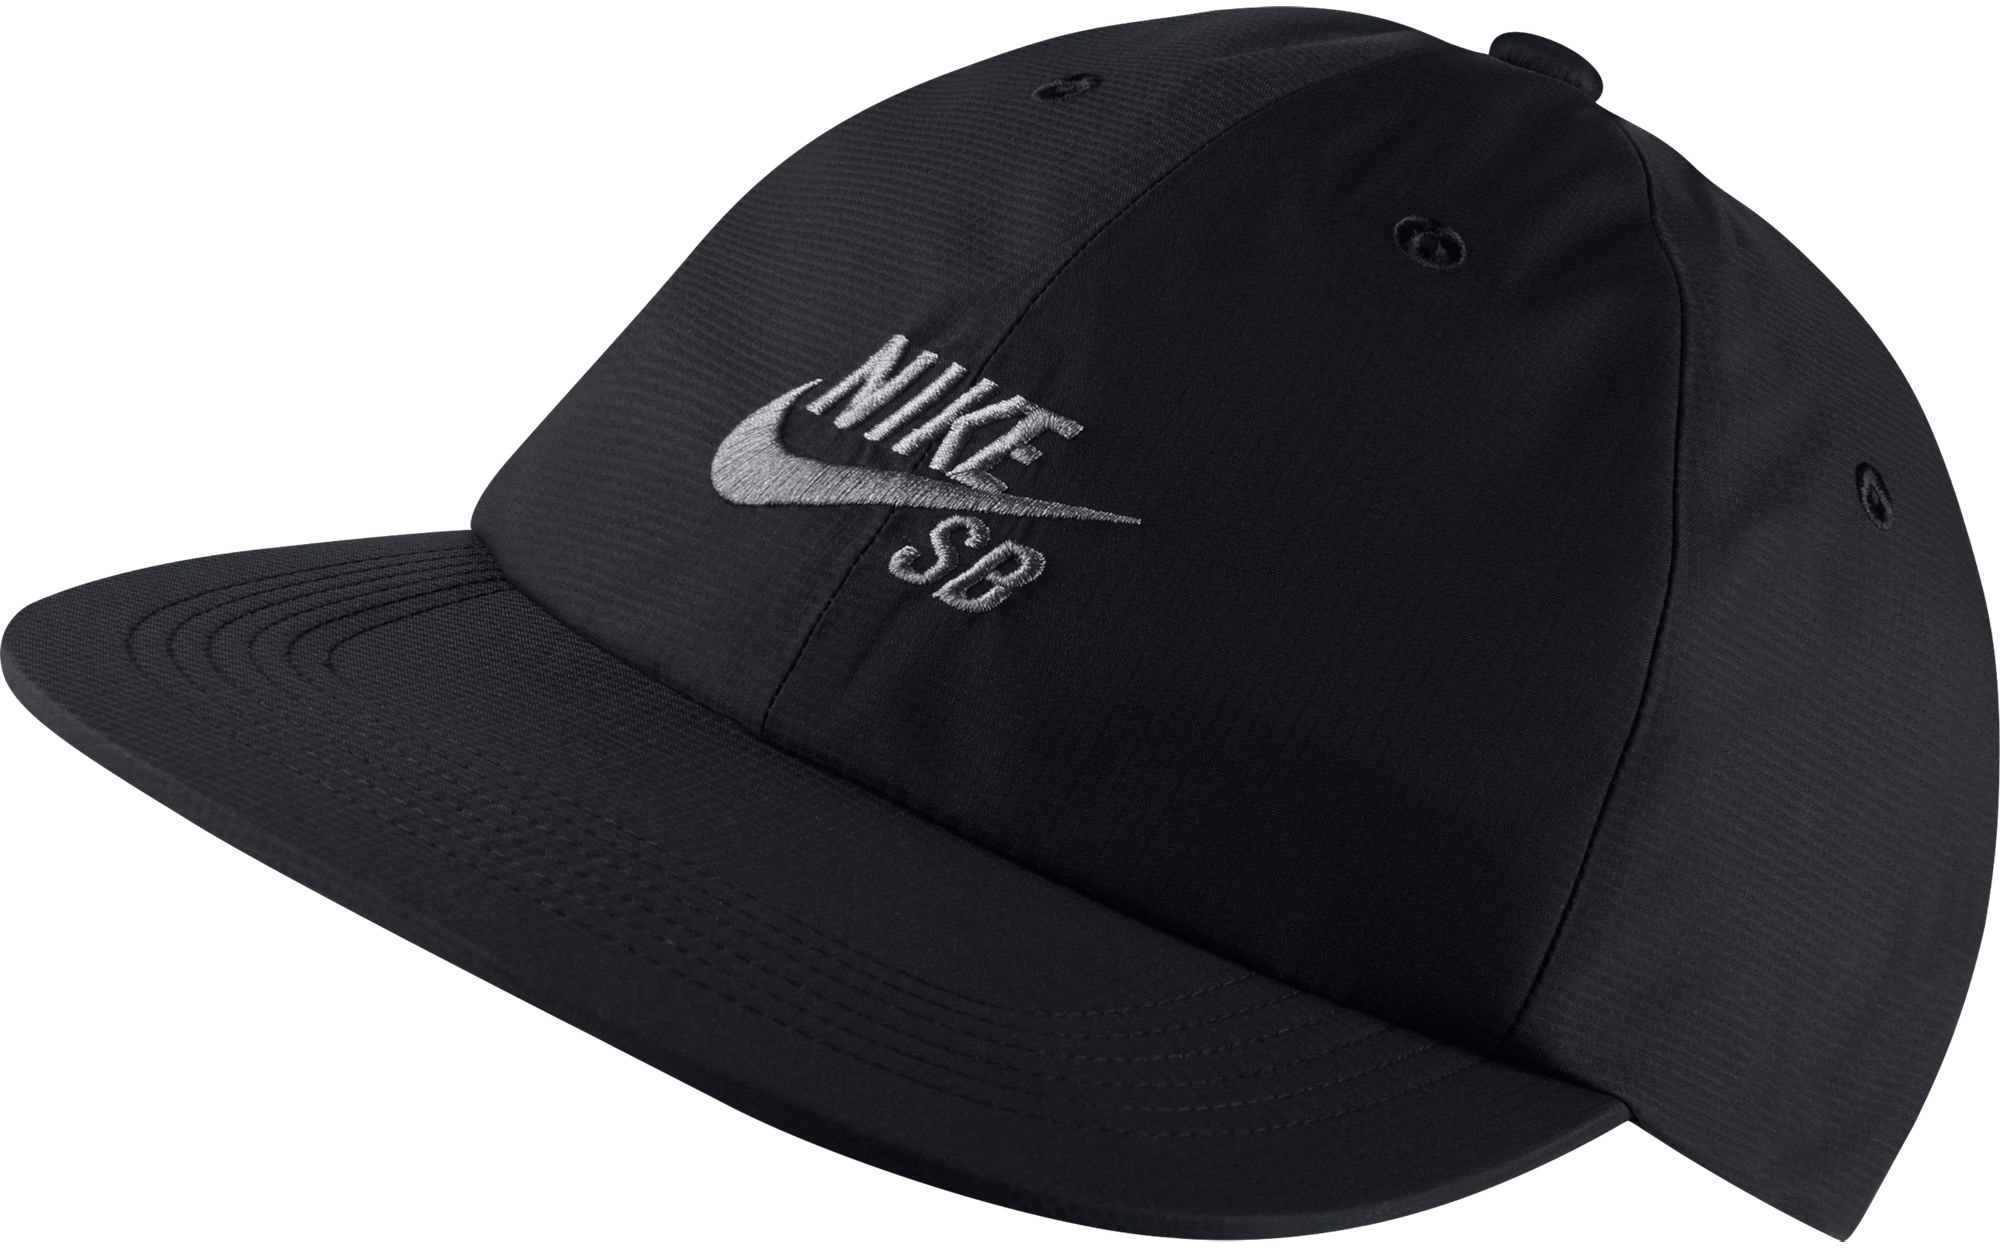 The Nike SB H86 Adjustable Cap is designed to keep rain off so you can stay dry when the weather turns. * Seam-sealed design provides weather protection * Adjustable back closure for a snug, customised fit * Six-panel design offers durability and comfort * Embroidered eyelets enhance ventilation * Fabric: 100% Nylon * Hand Wash * Imported - $30.00